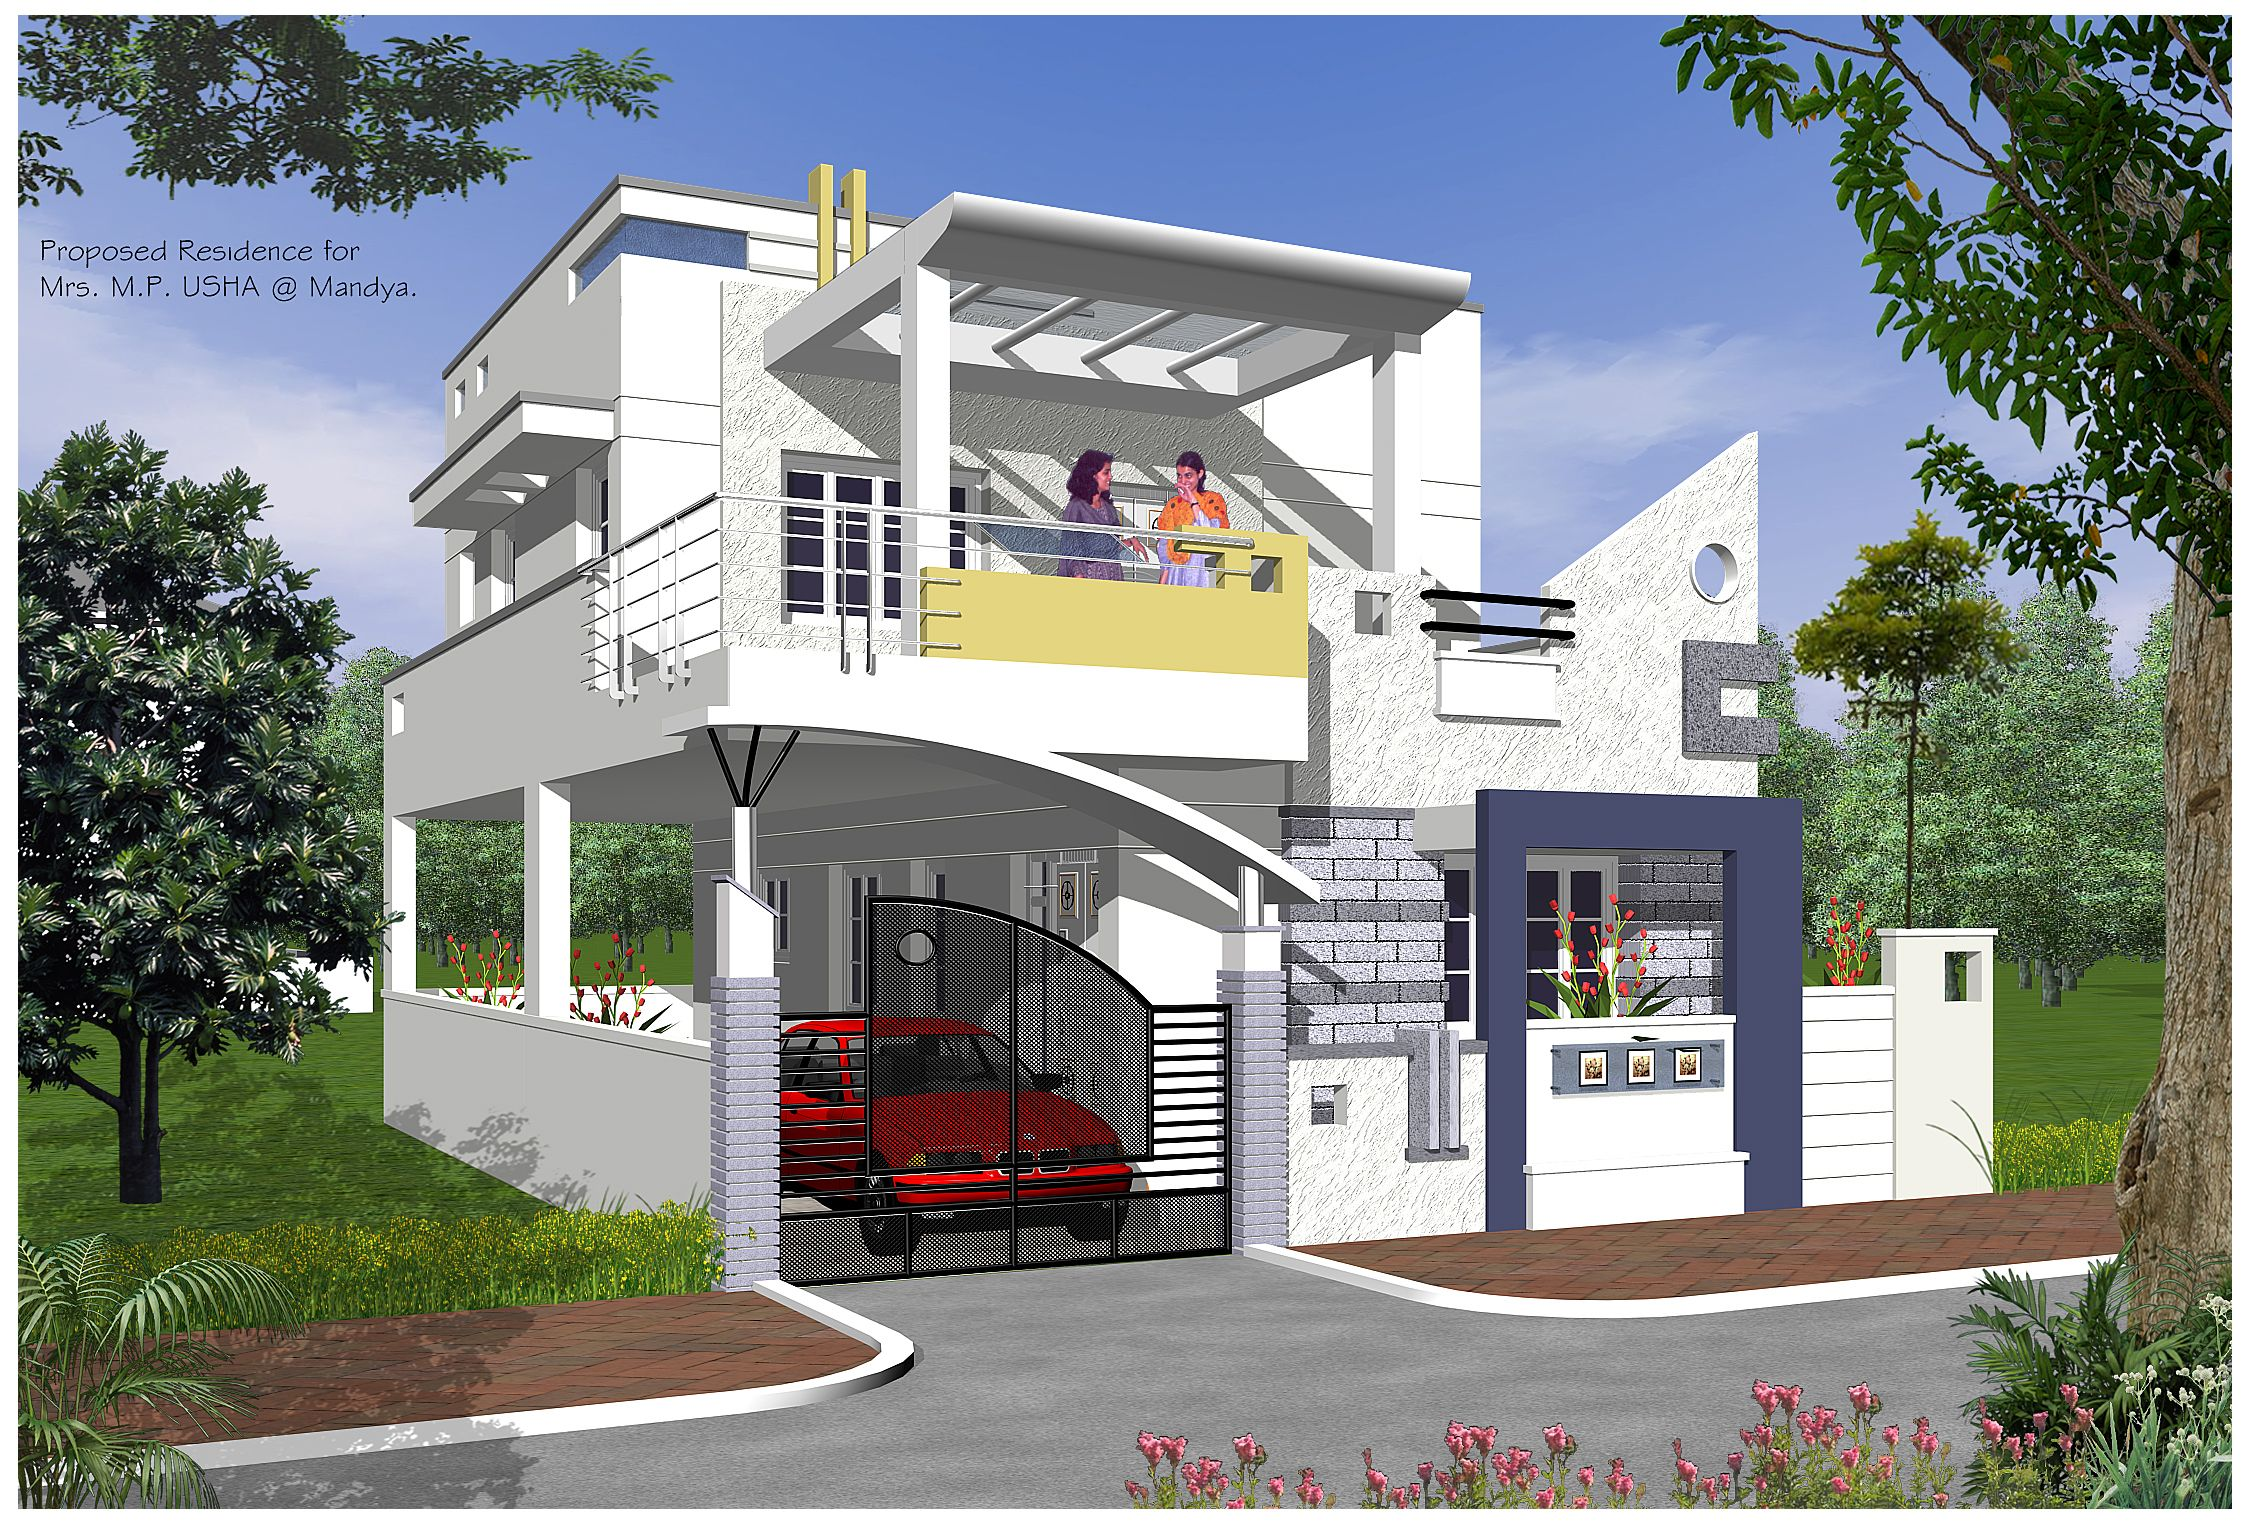 home design home design ideas home design pinoy eplans modern house designs small house design and more modern small house architecture